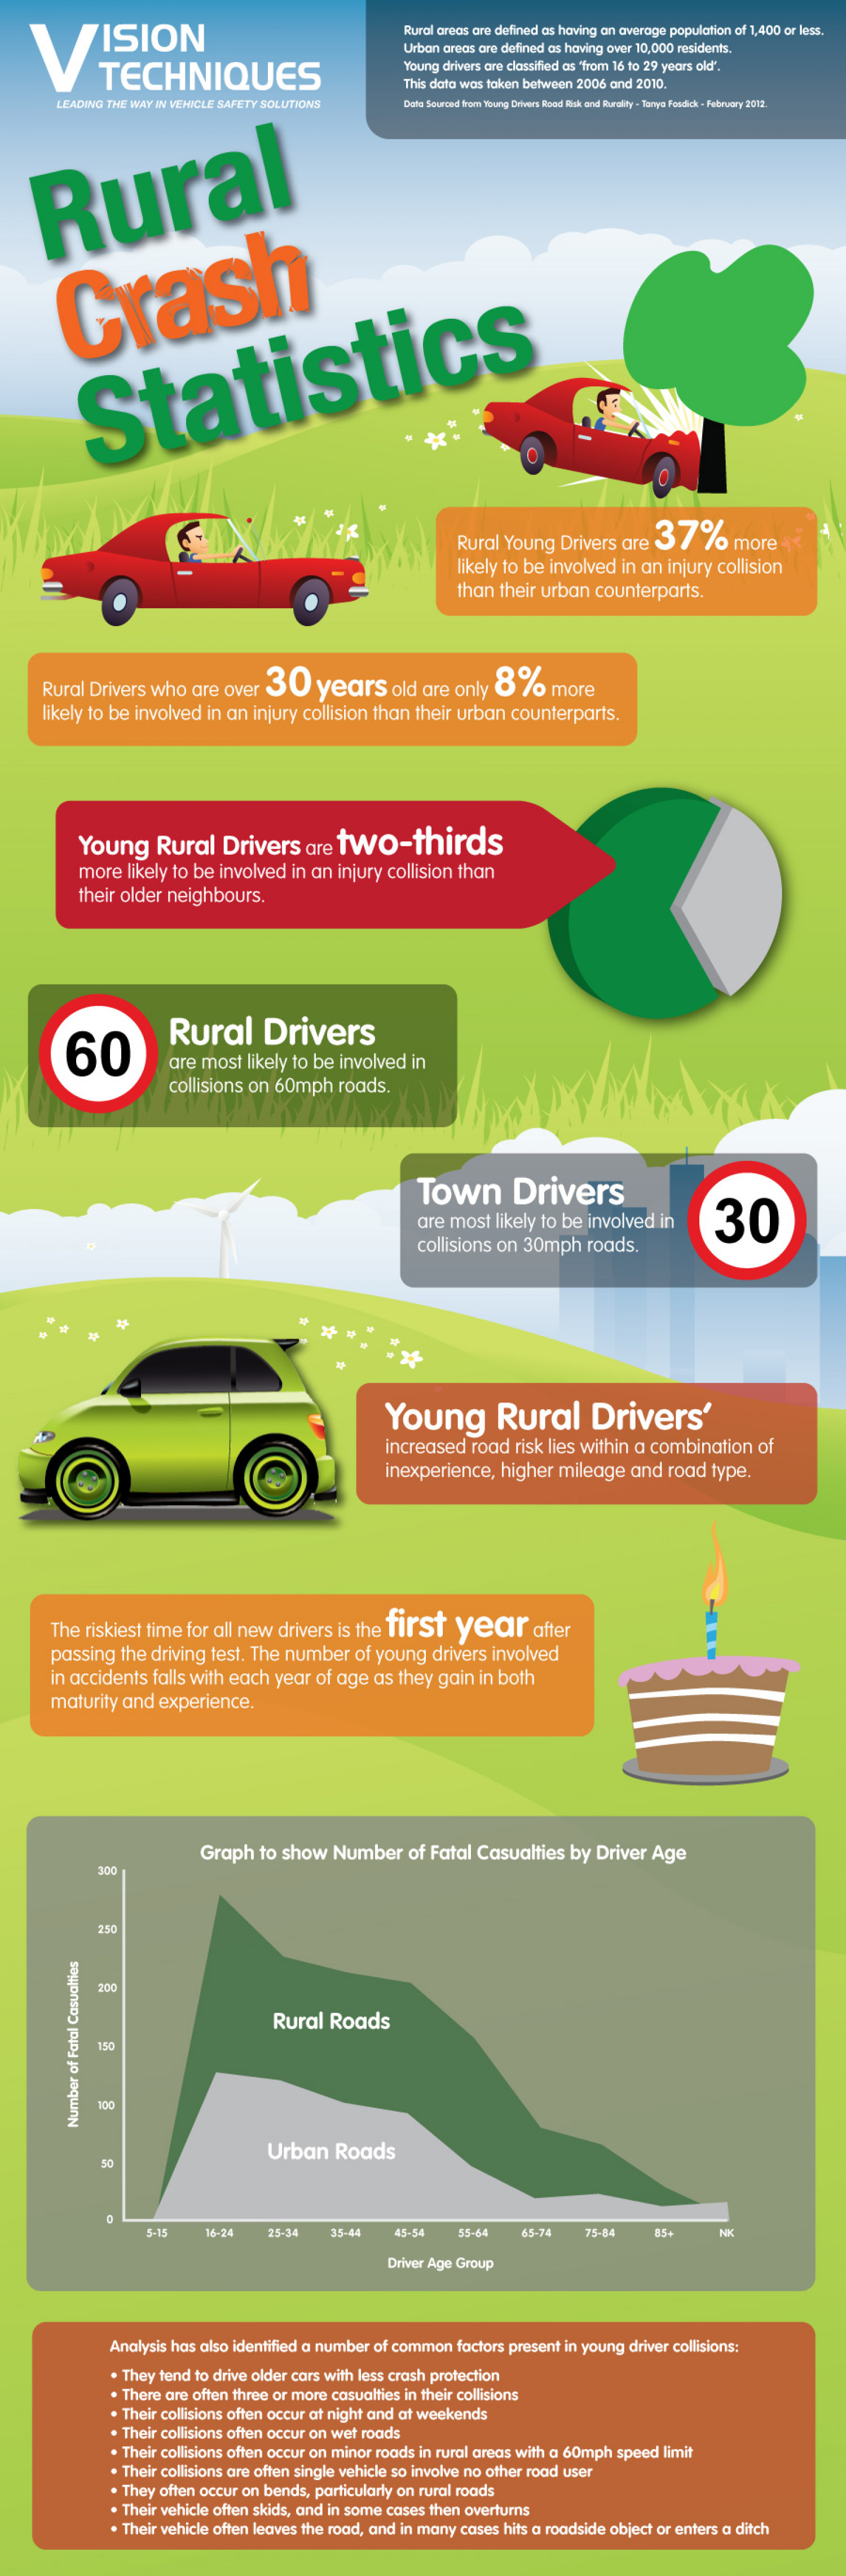 Rural Crash Statistics by Vision Techniques Infographic